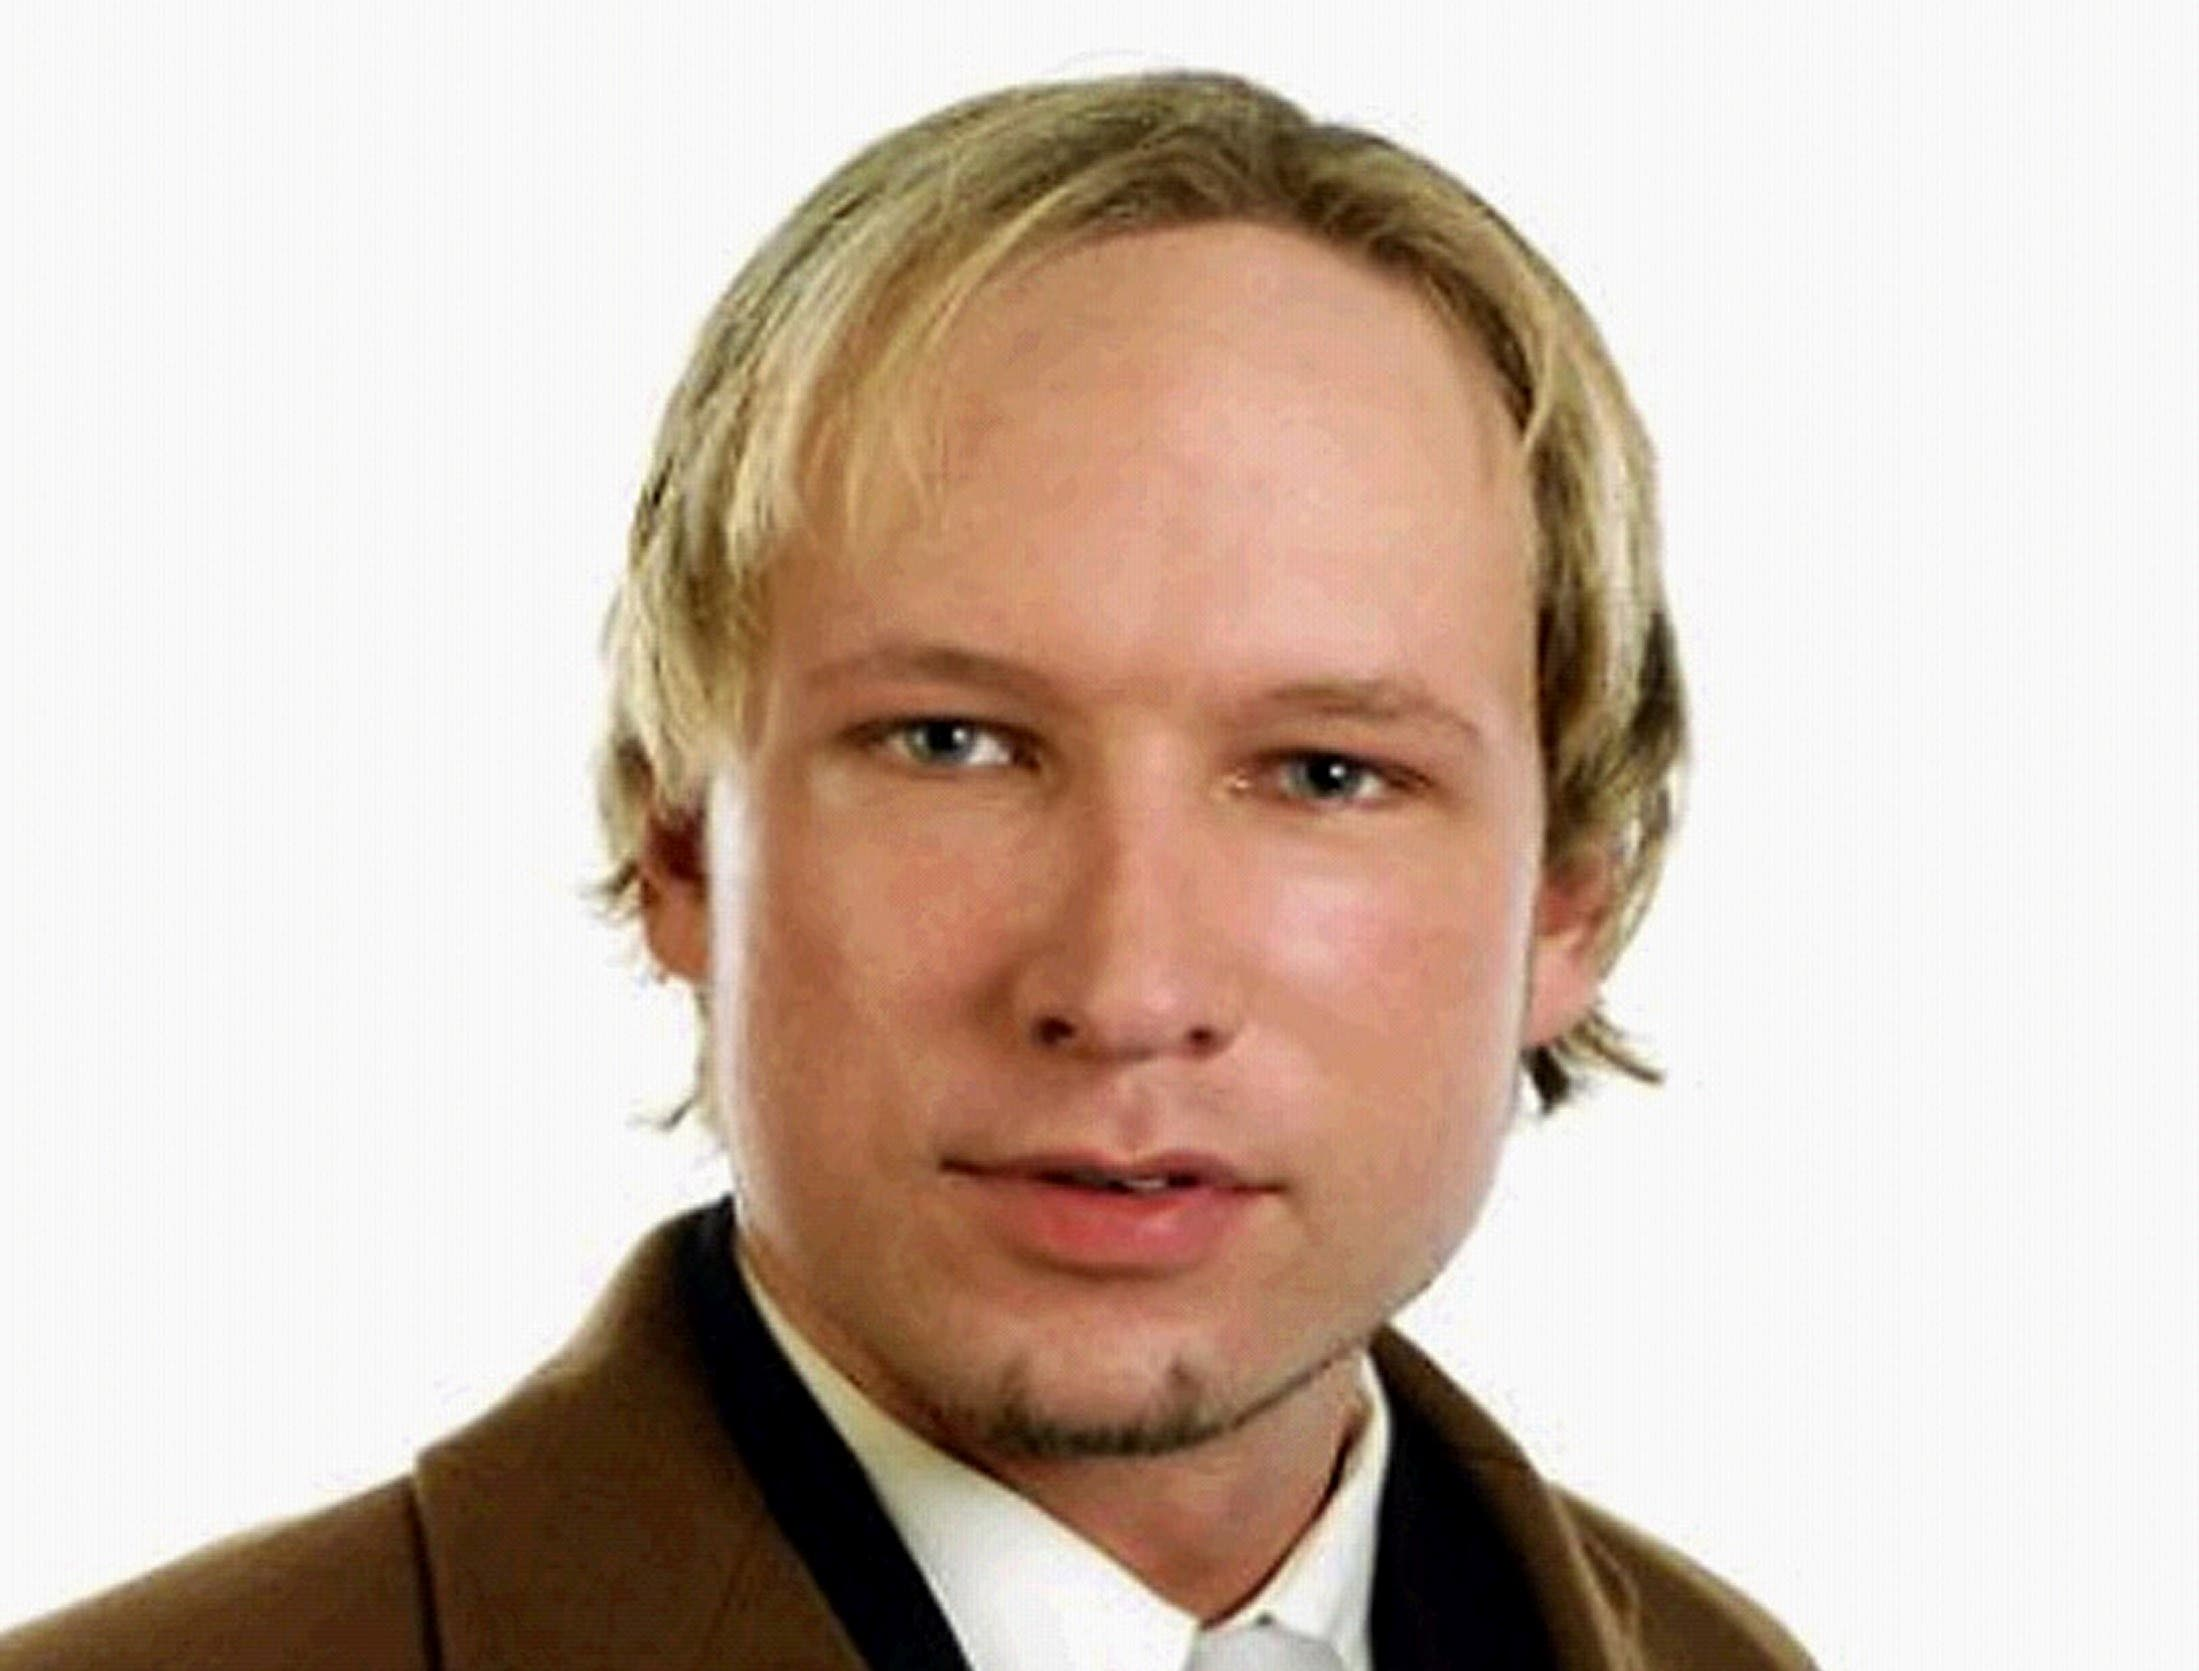 Anders Behring Breivik is the Norwegian face of terror who was full of hatred toward Muslims and anti-Semites  (of the anti-Israeli variety).